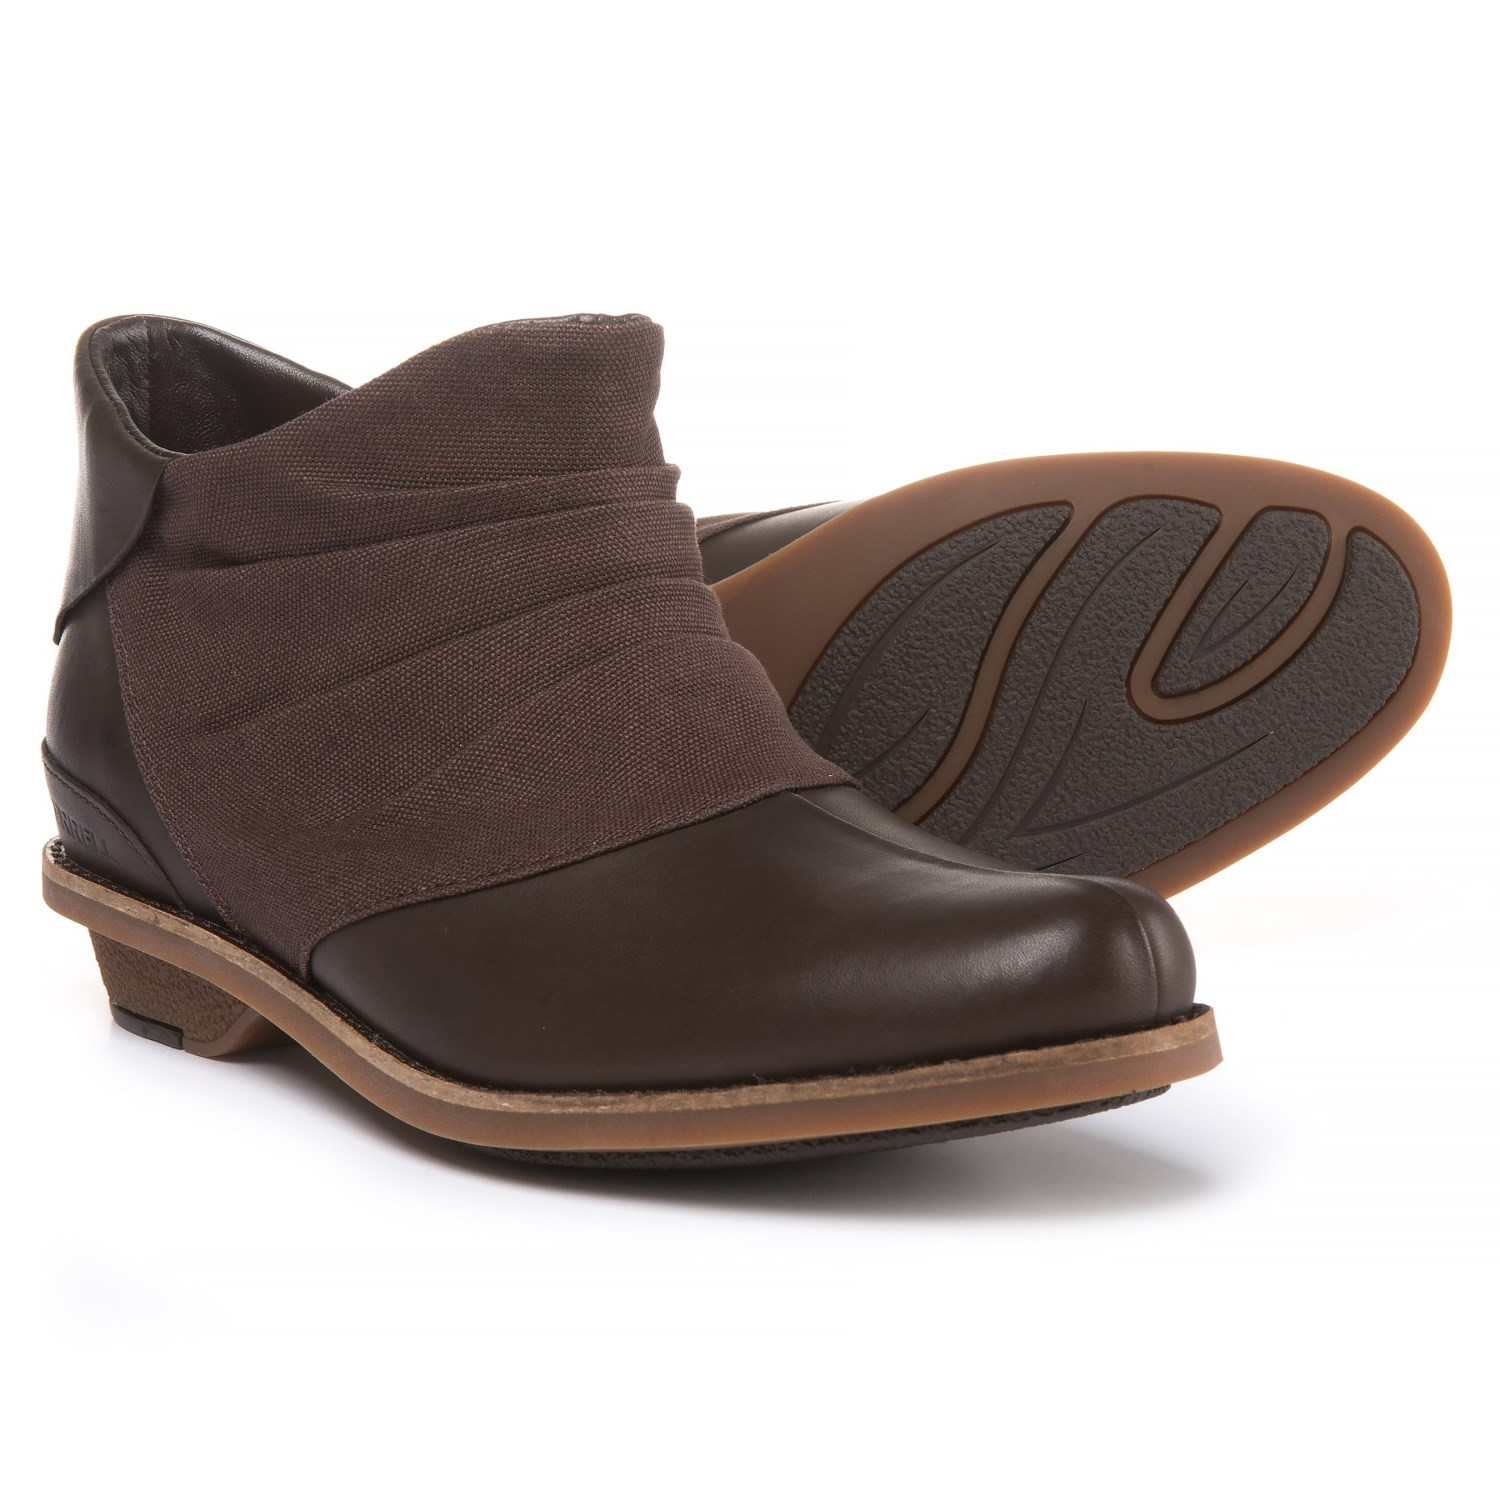 e5fd875738b9 Merrell Adaline Bluff Leather Ankle Boots (For Women)